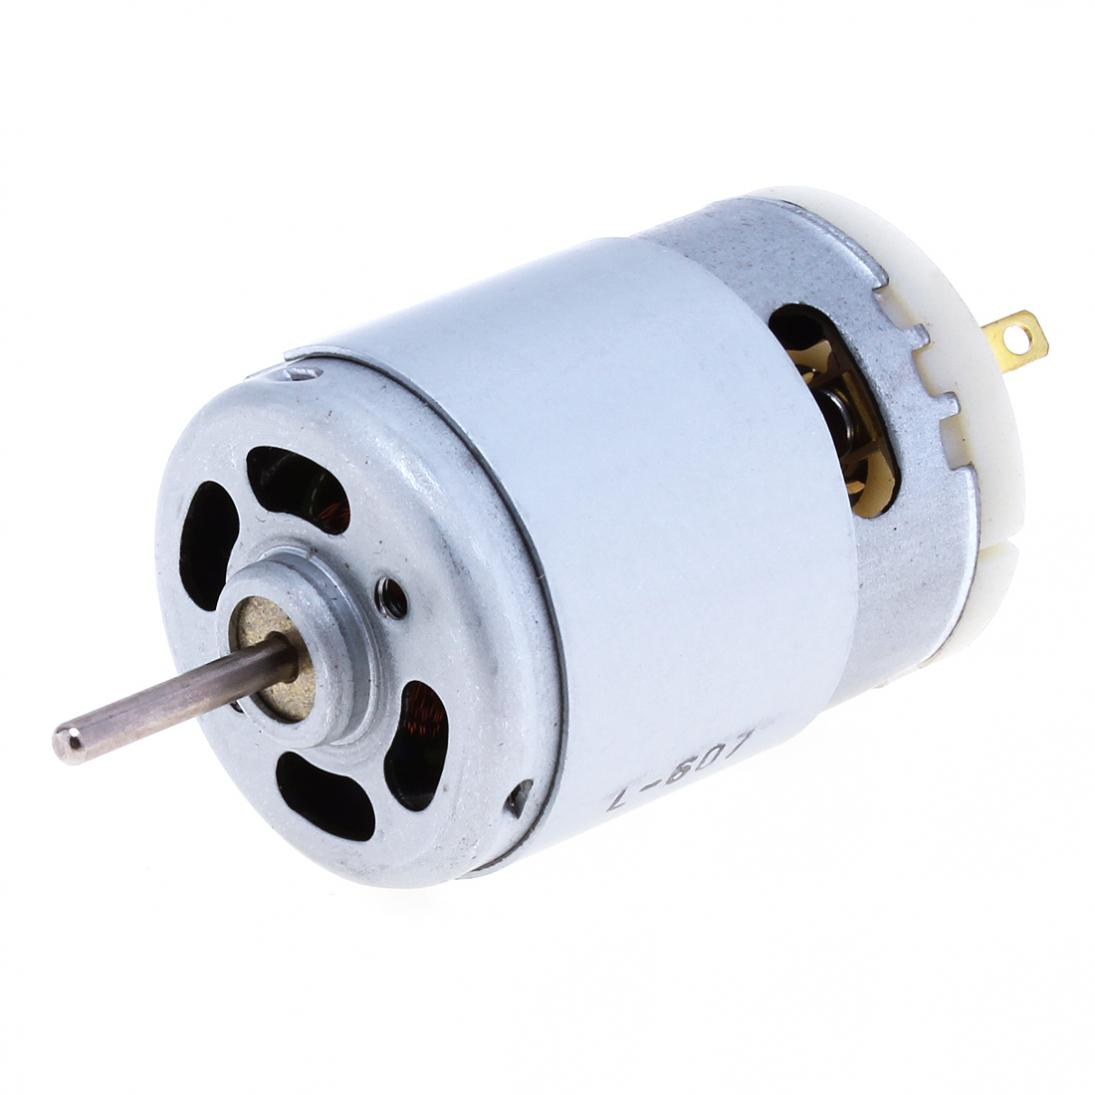 380 DC Motor High Speed Motor and Large Torque Motor Fits for DIY Technology Small Production / Car Model Accessories